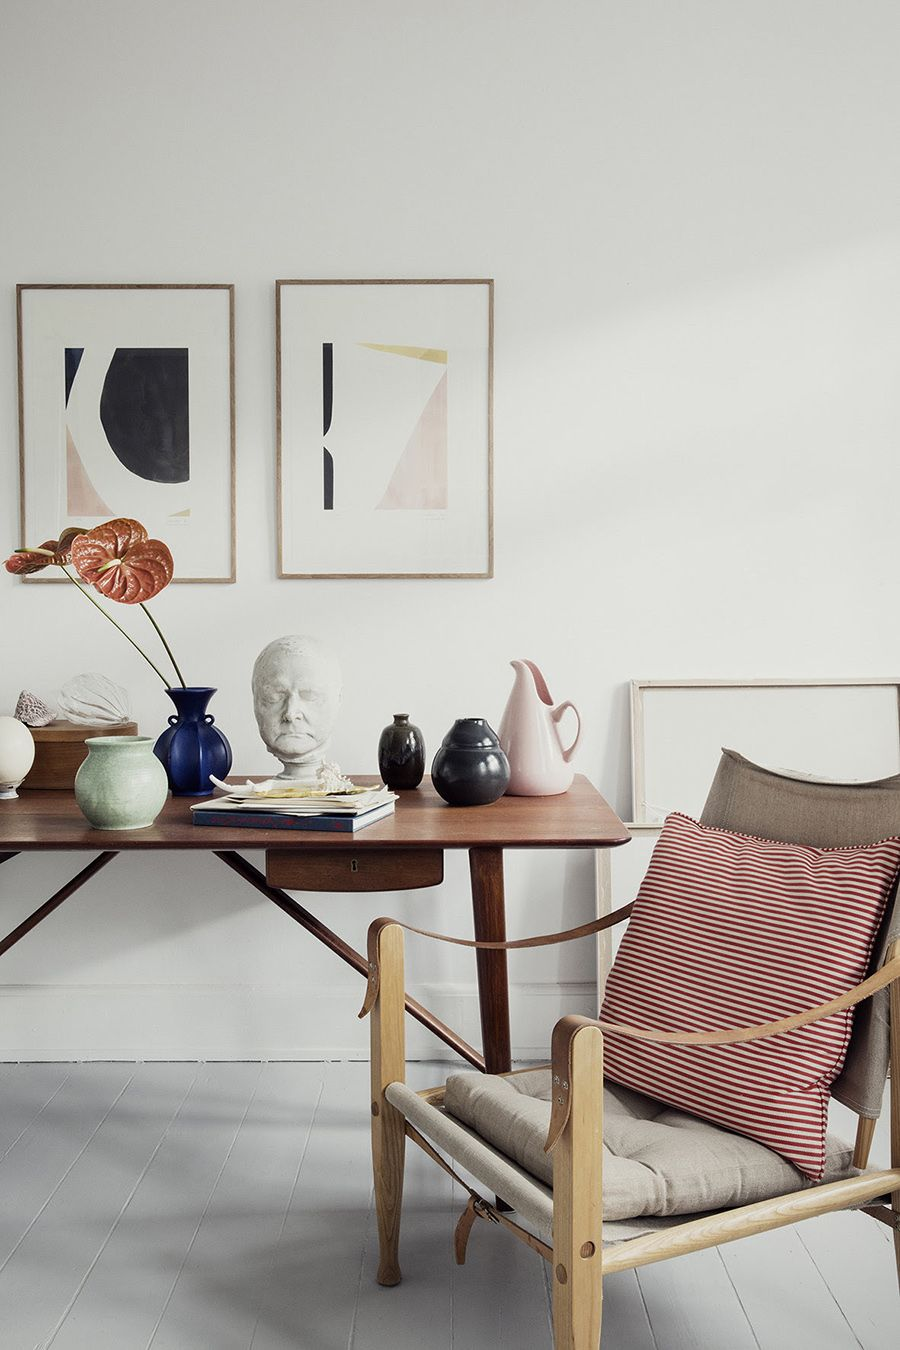 Home Decor Ideas On A Budget Blog Design Inspiration Images Gallery. The  Hepworth Collection Is A Series Of Affordable Art From Rh Pinterest Com